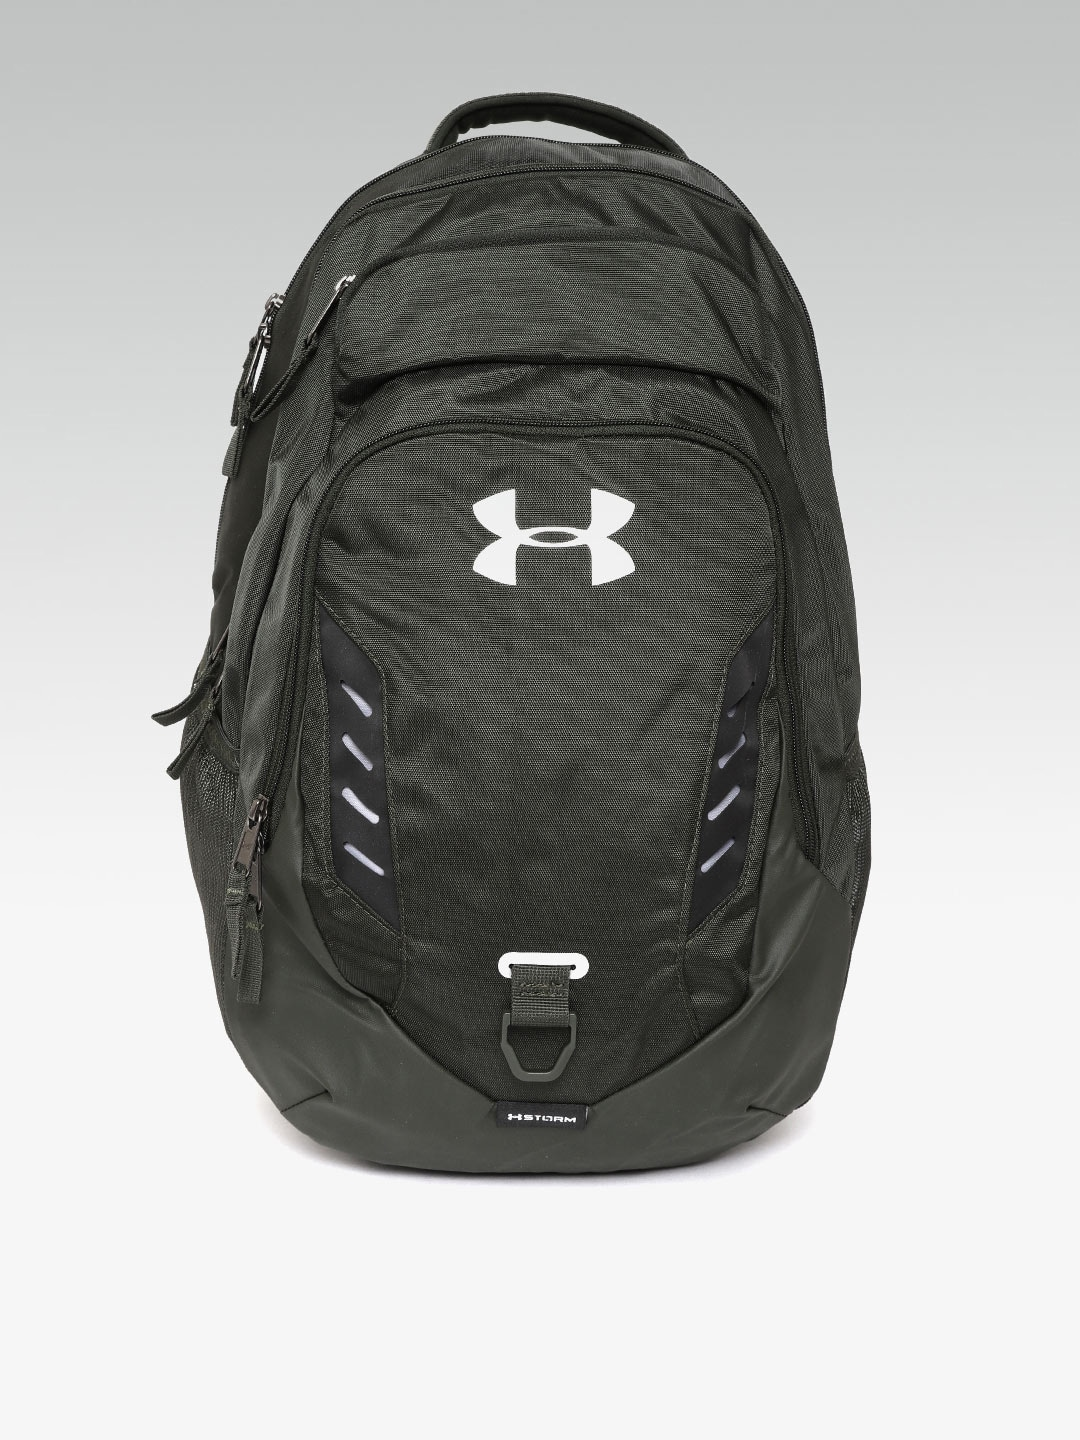 65abe278a2 Under Armour Backpacks - Buy Under Armour Backpacks online in India